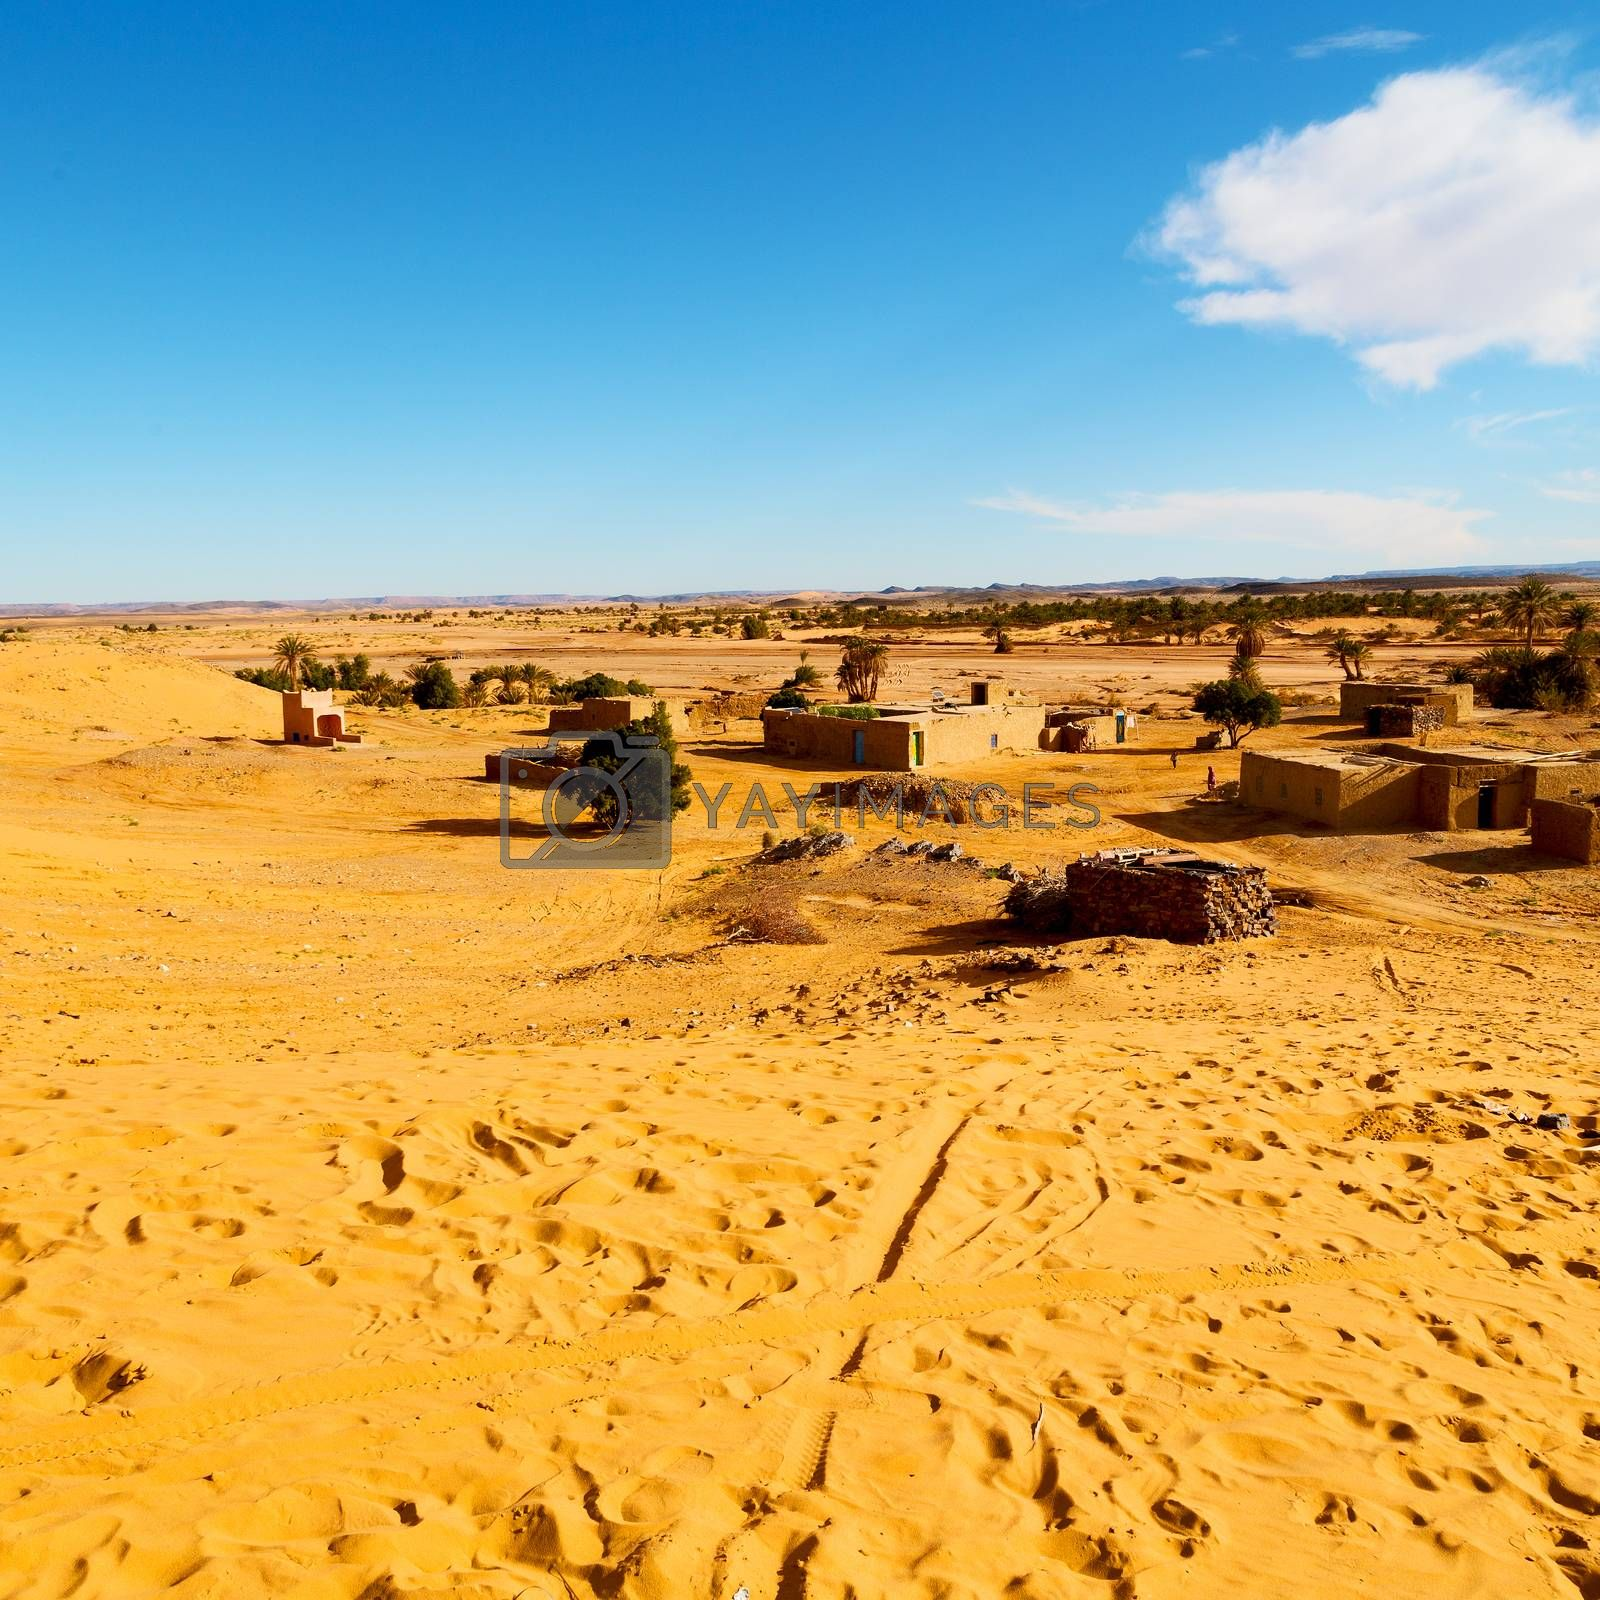 sahara      africa in morocco  palm the old contruction and  his by lkpro